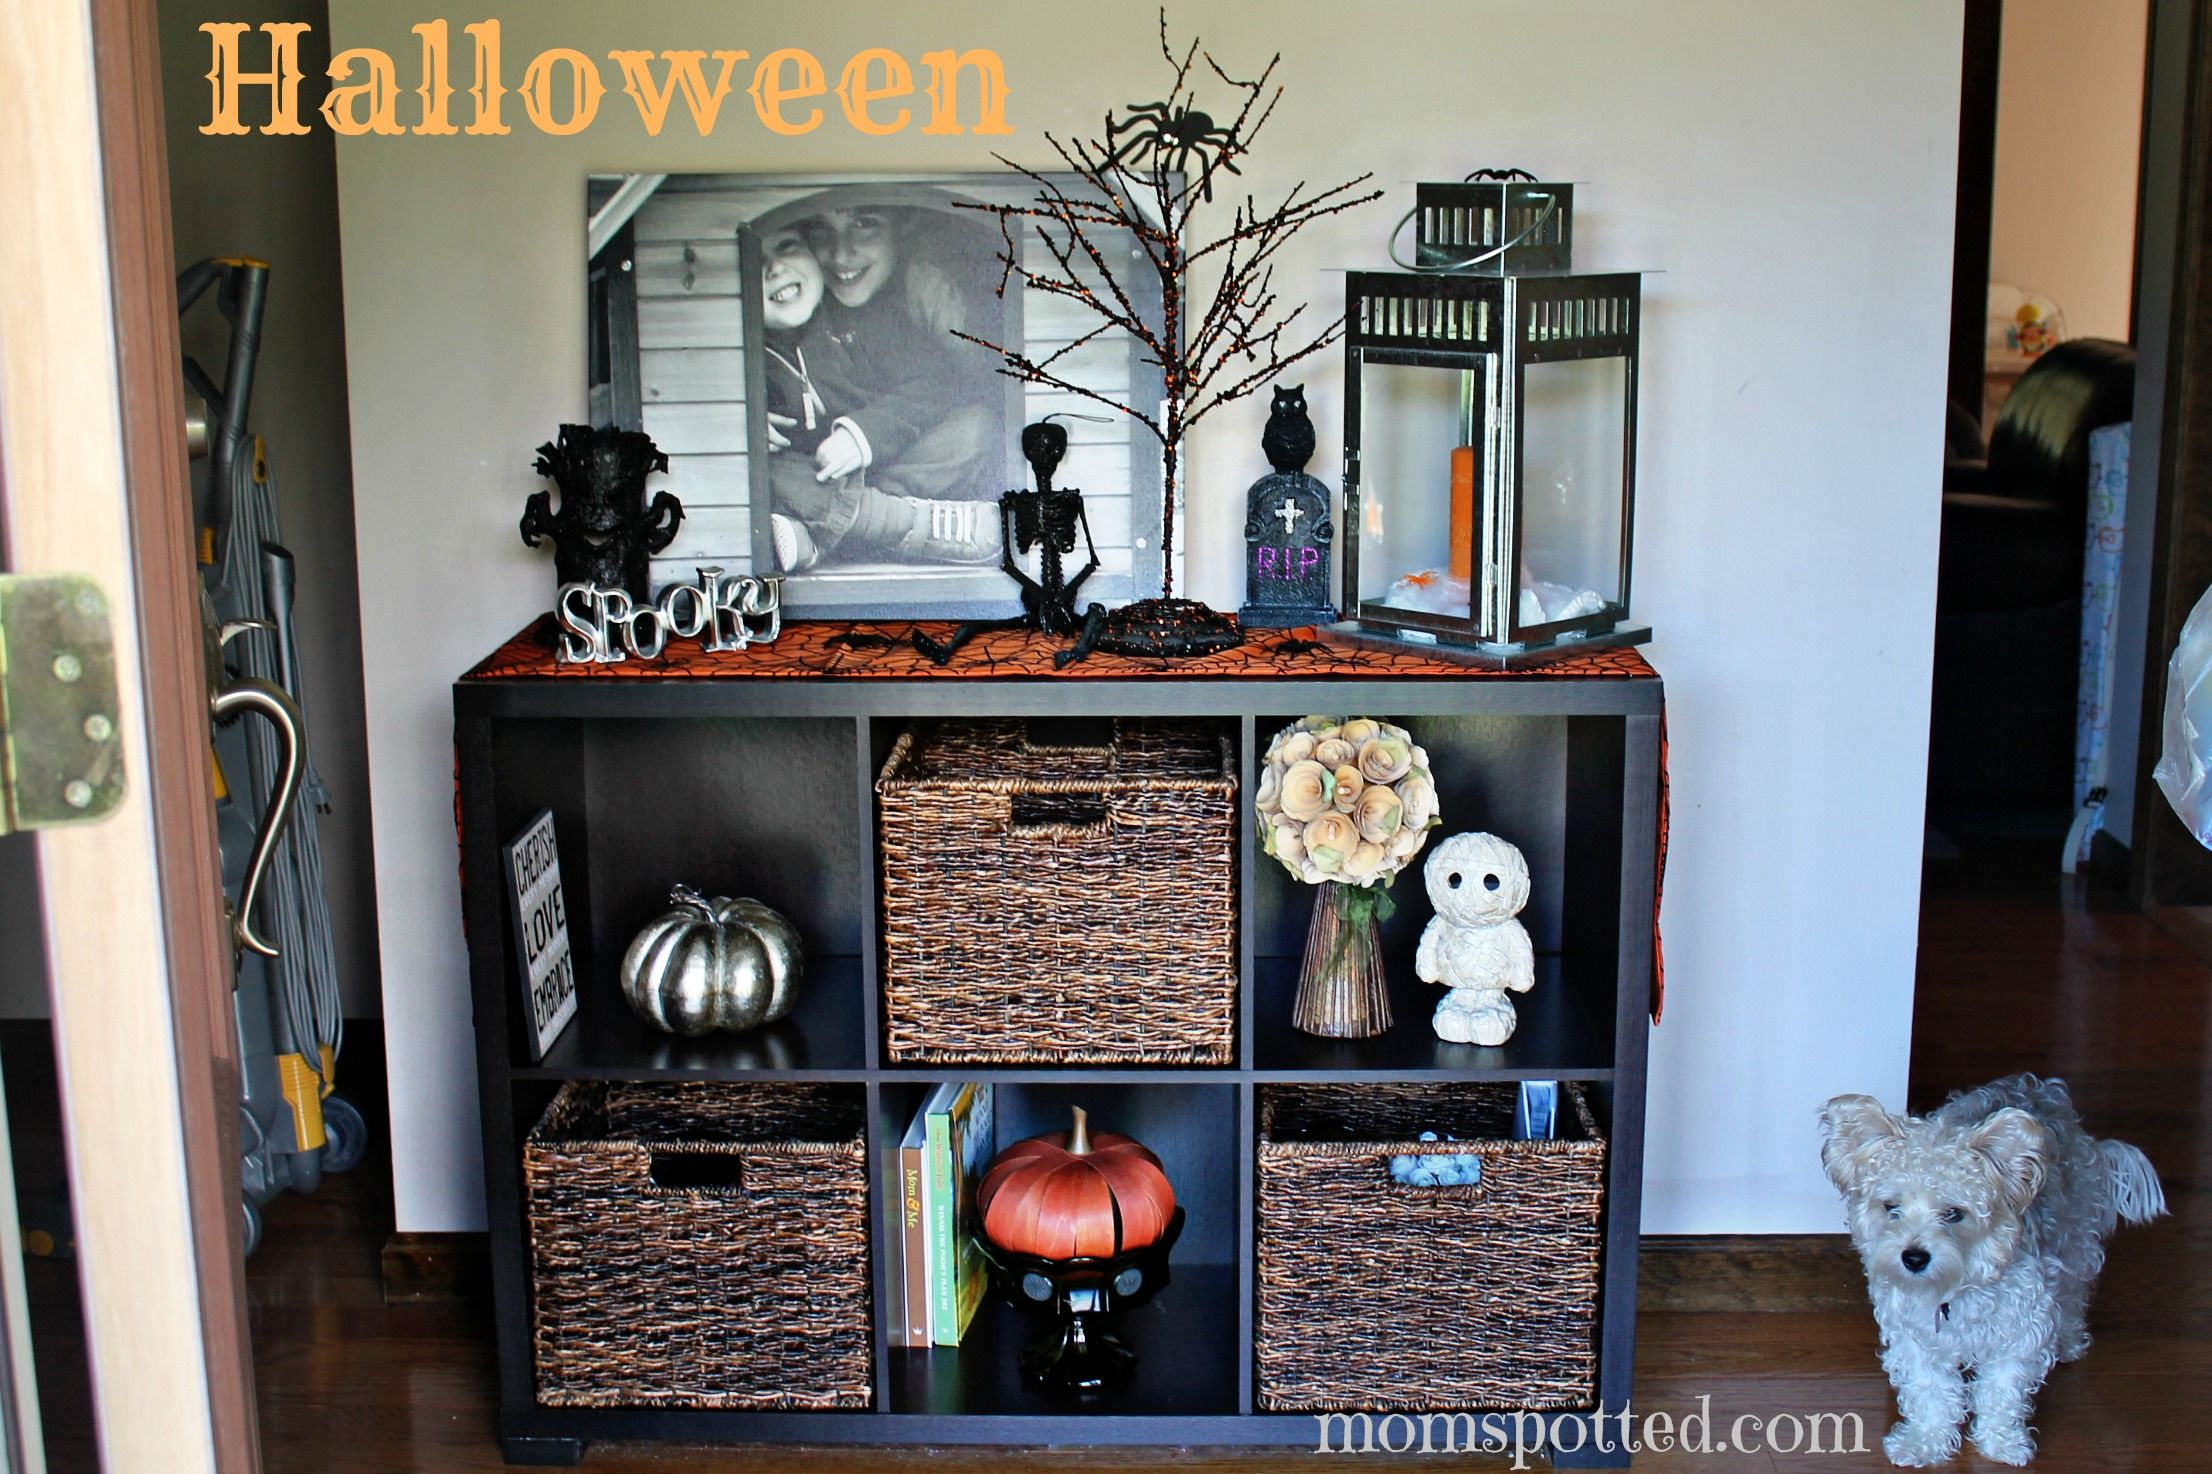 Halloween decorations  IDEAS  INSPIRATIONS Halloween Decorations - Hobby Lobby Halloween Decorations